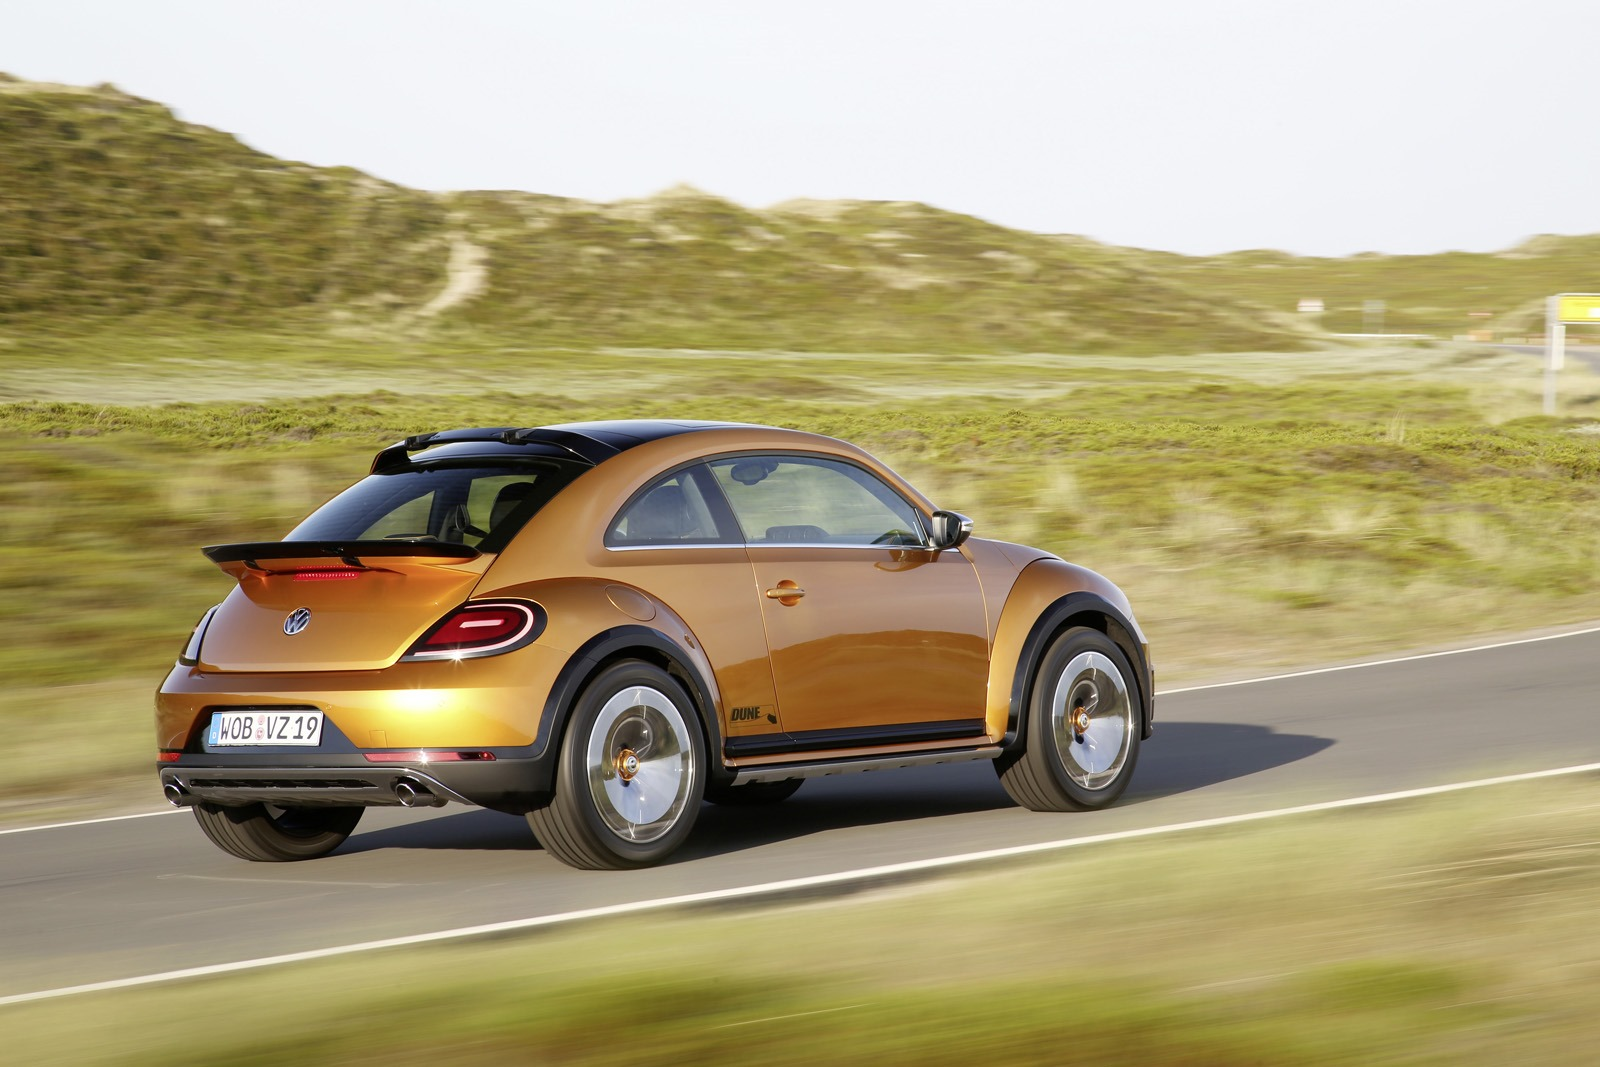 2019 Volkswagen Beetle Dune Concept photo - 1